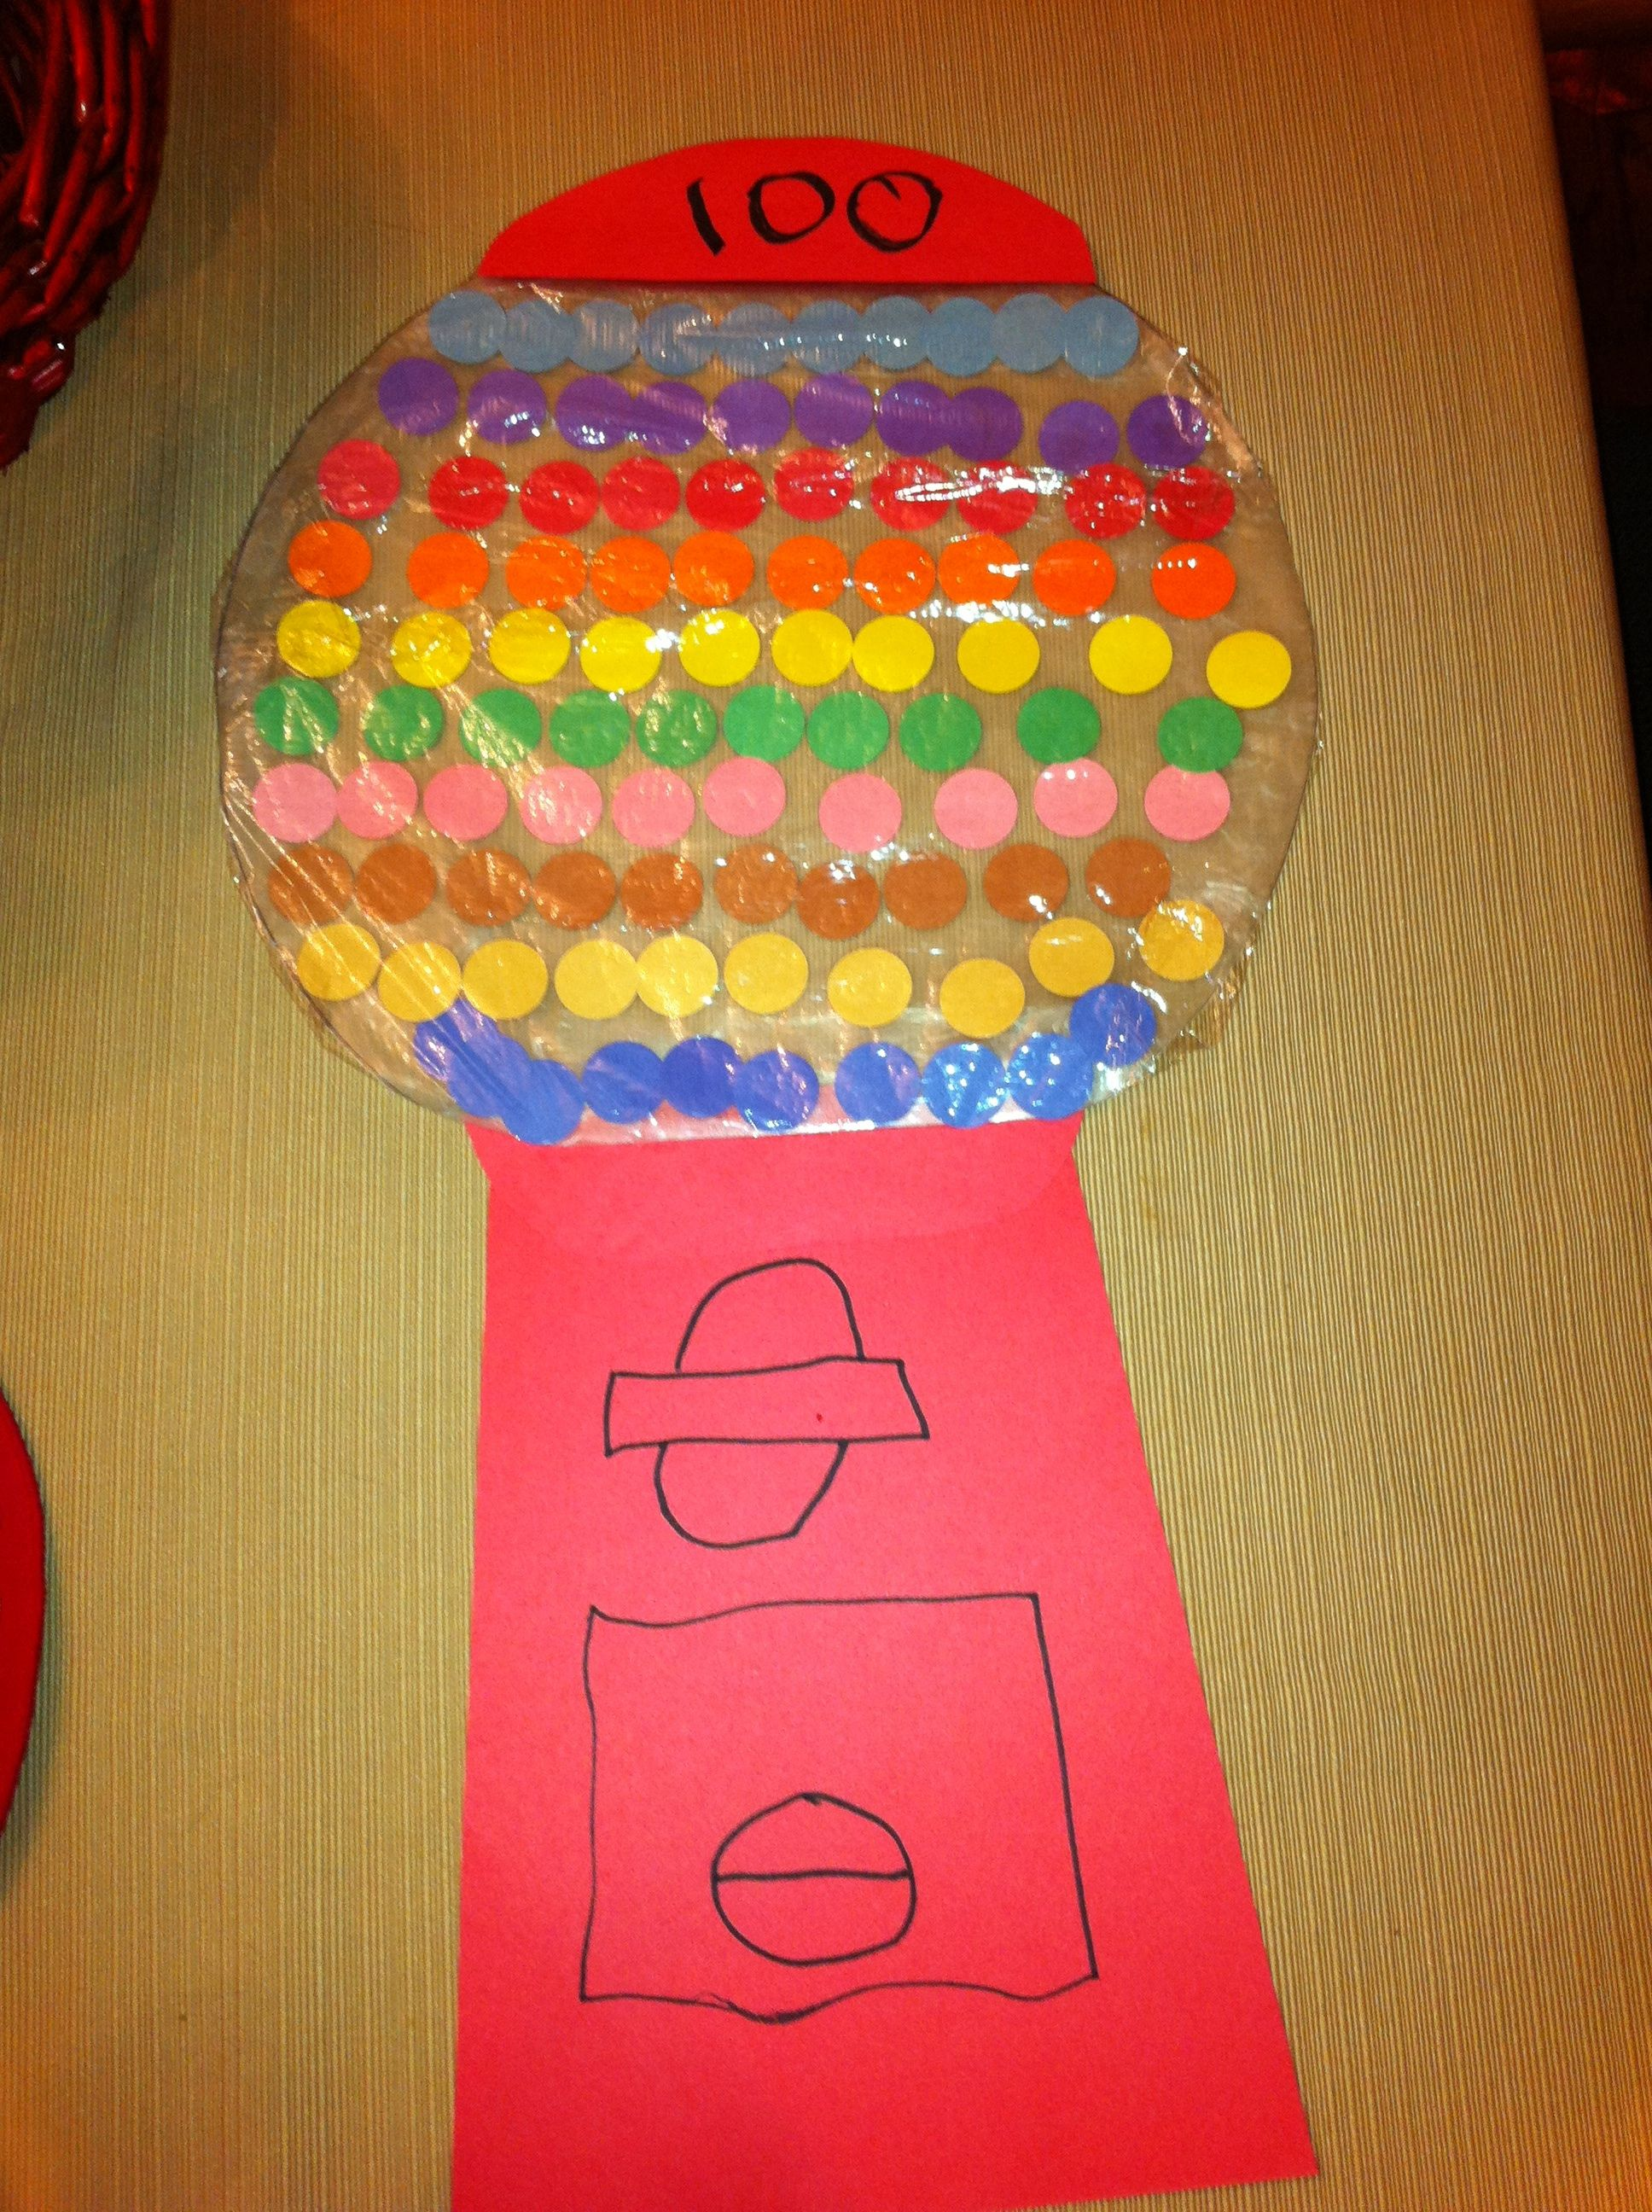 Katelyn S Pre K 100 Day Project Gumball Machine With 100